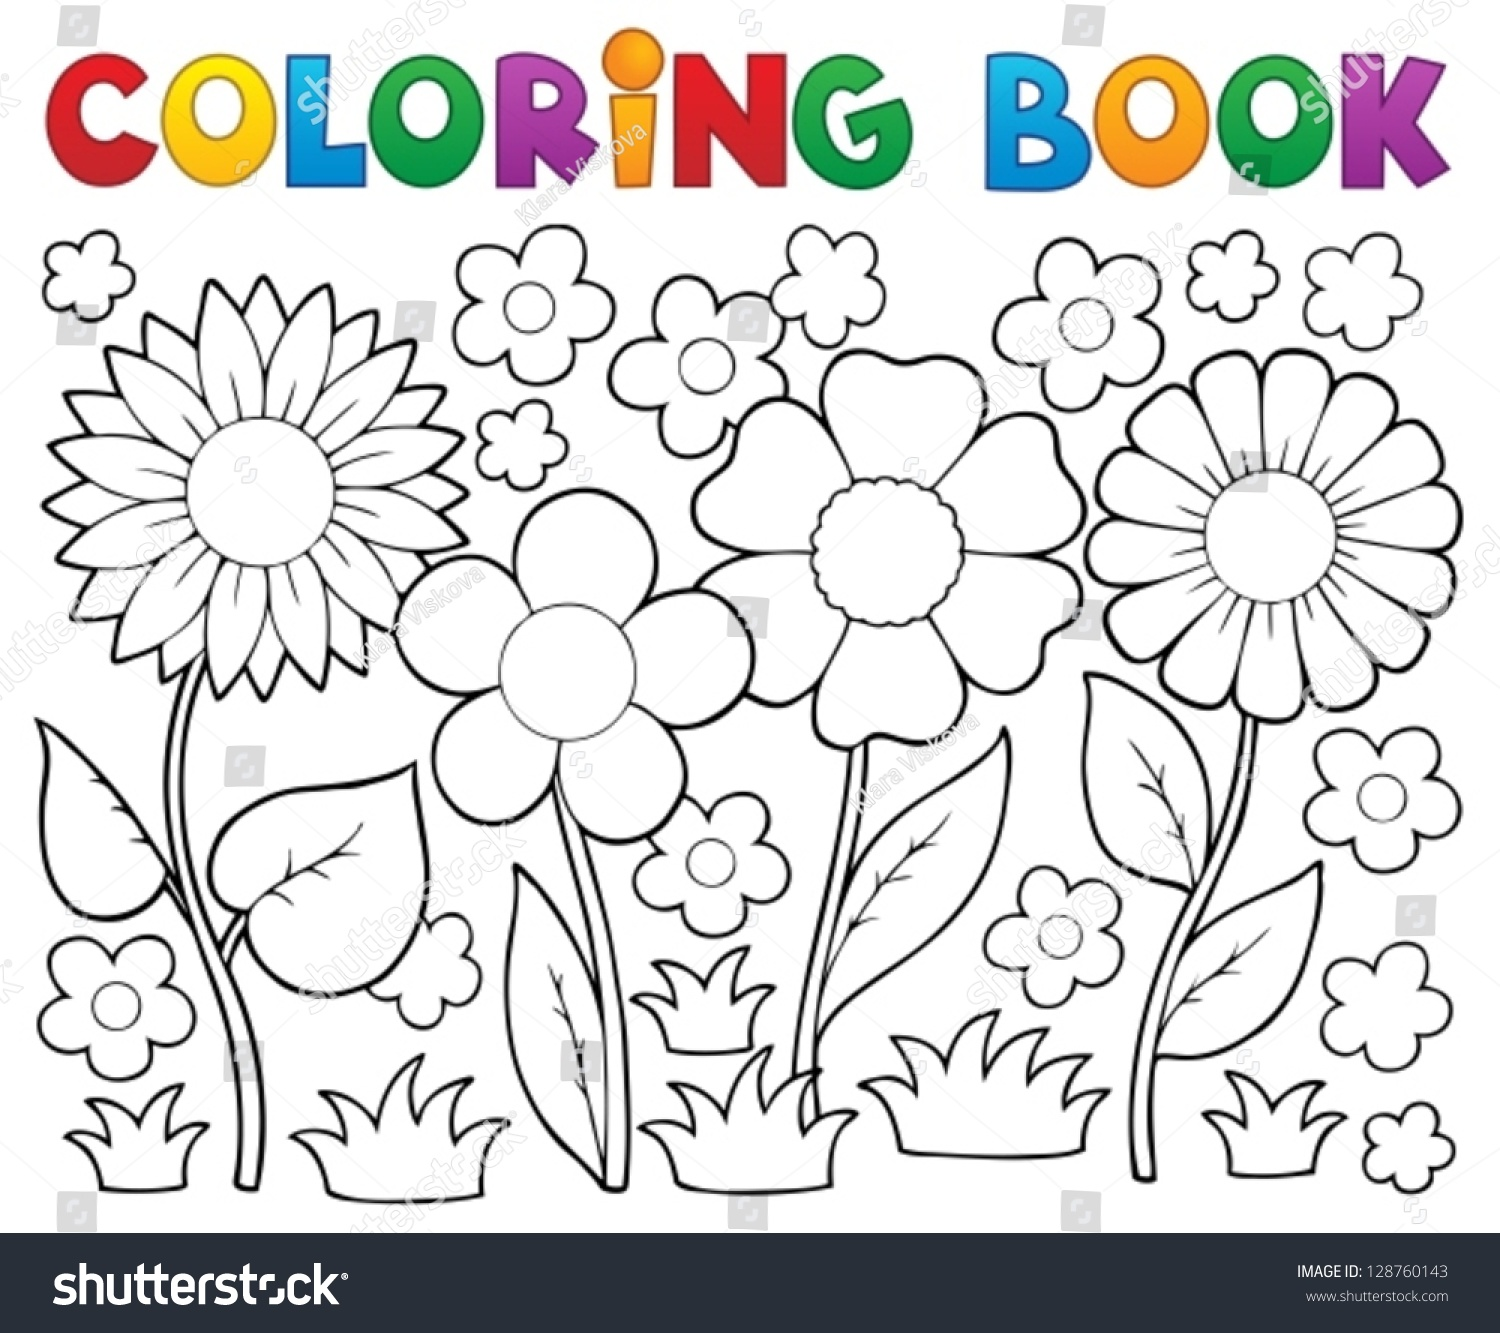 Coloring book for notability - Coloring Book For Notability Image Photo Editor Shutterstock